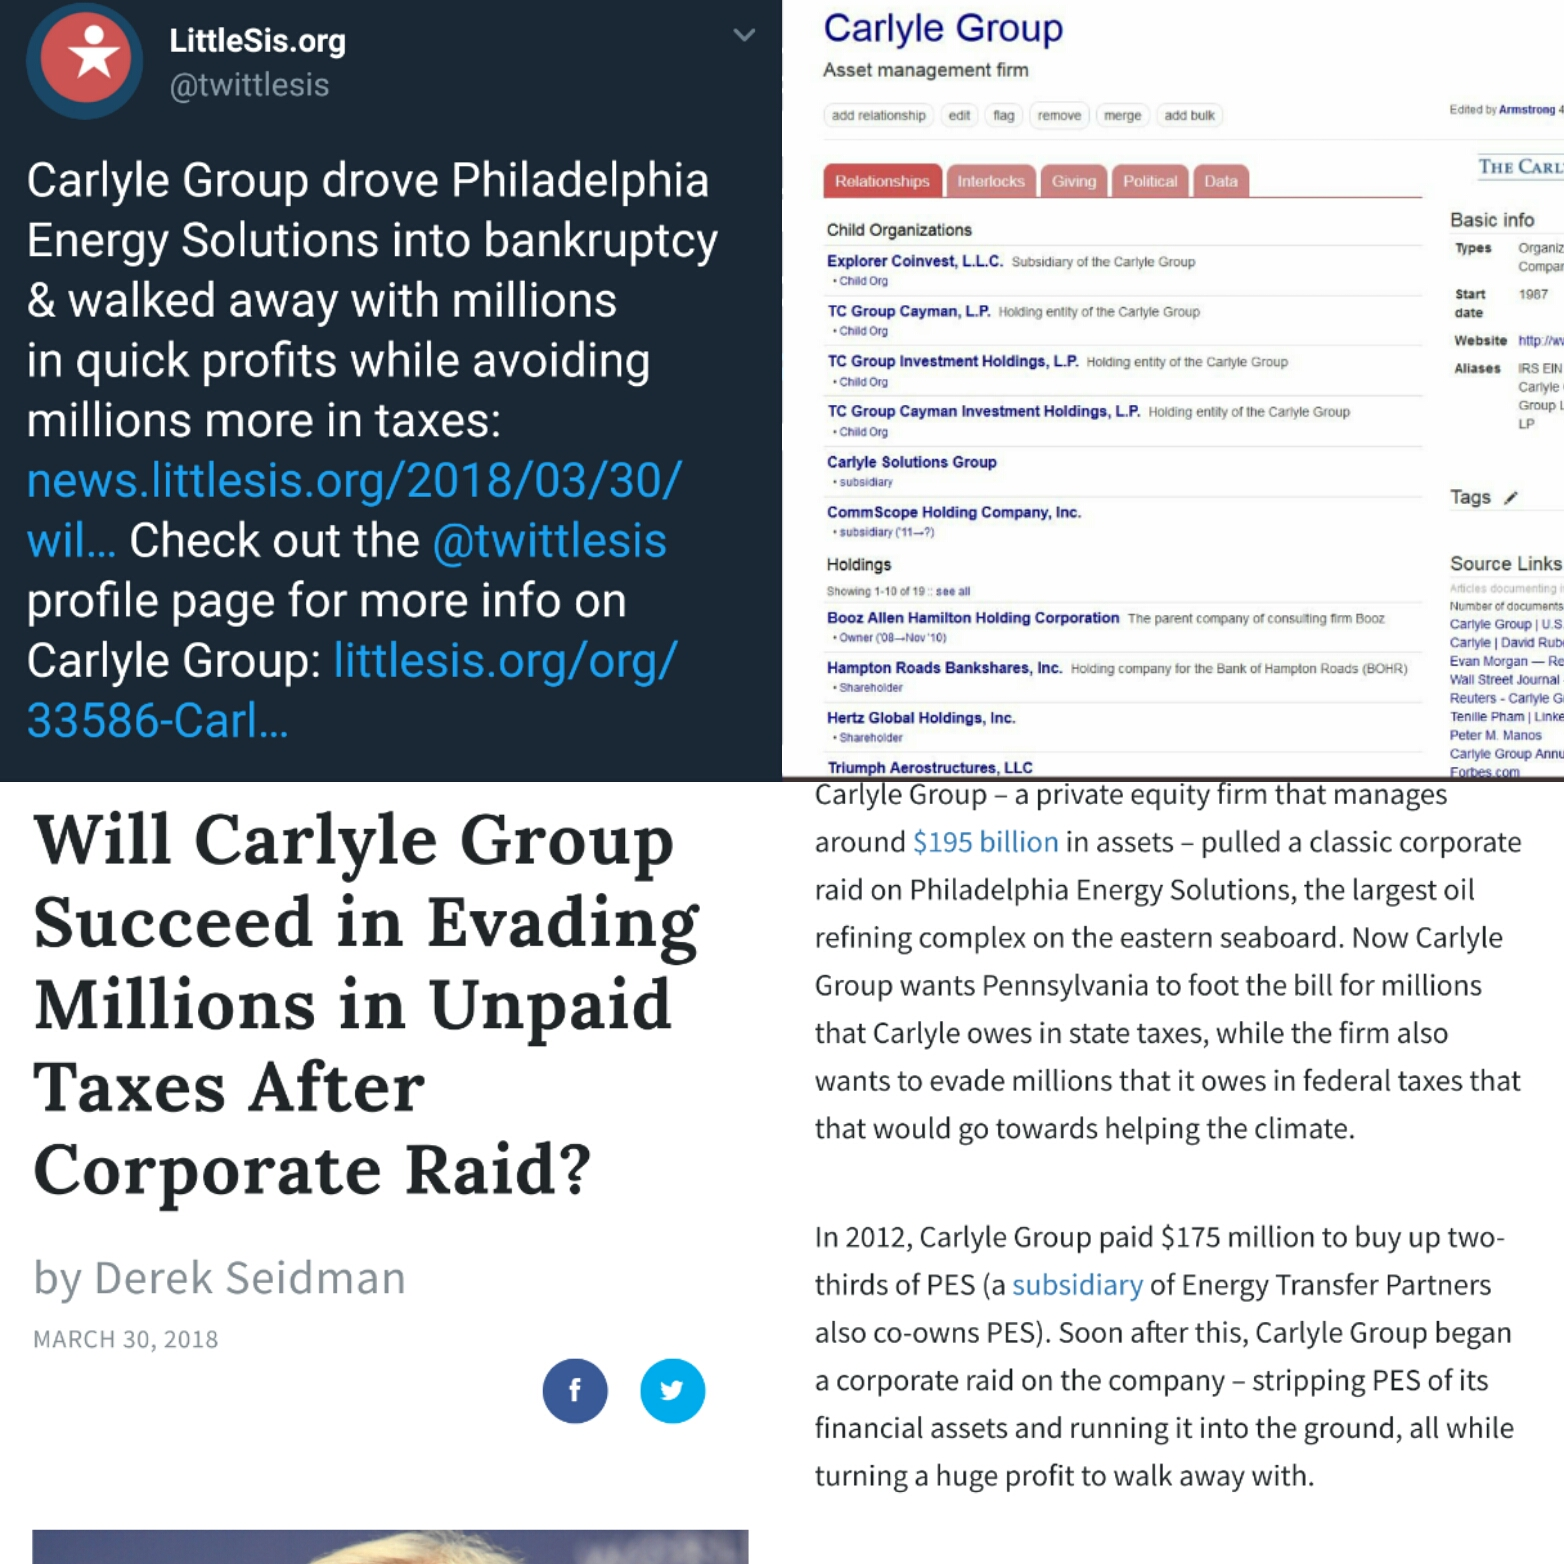 Will Carlyle Group Succeed in Evading Millions in Unpaid Taxes After